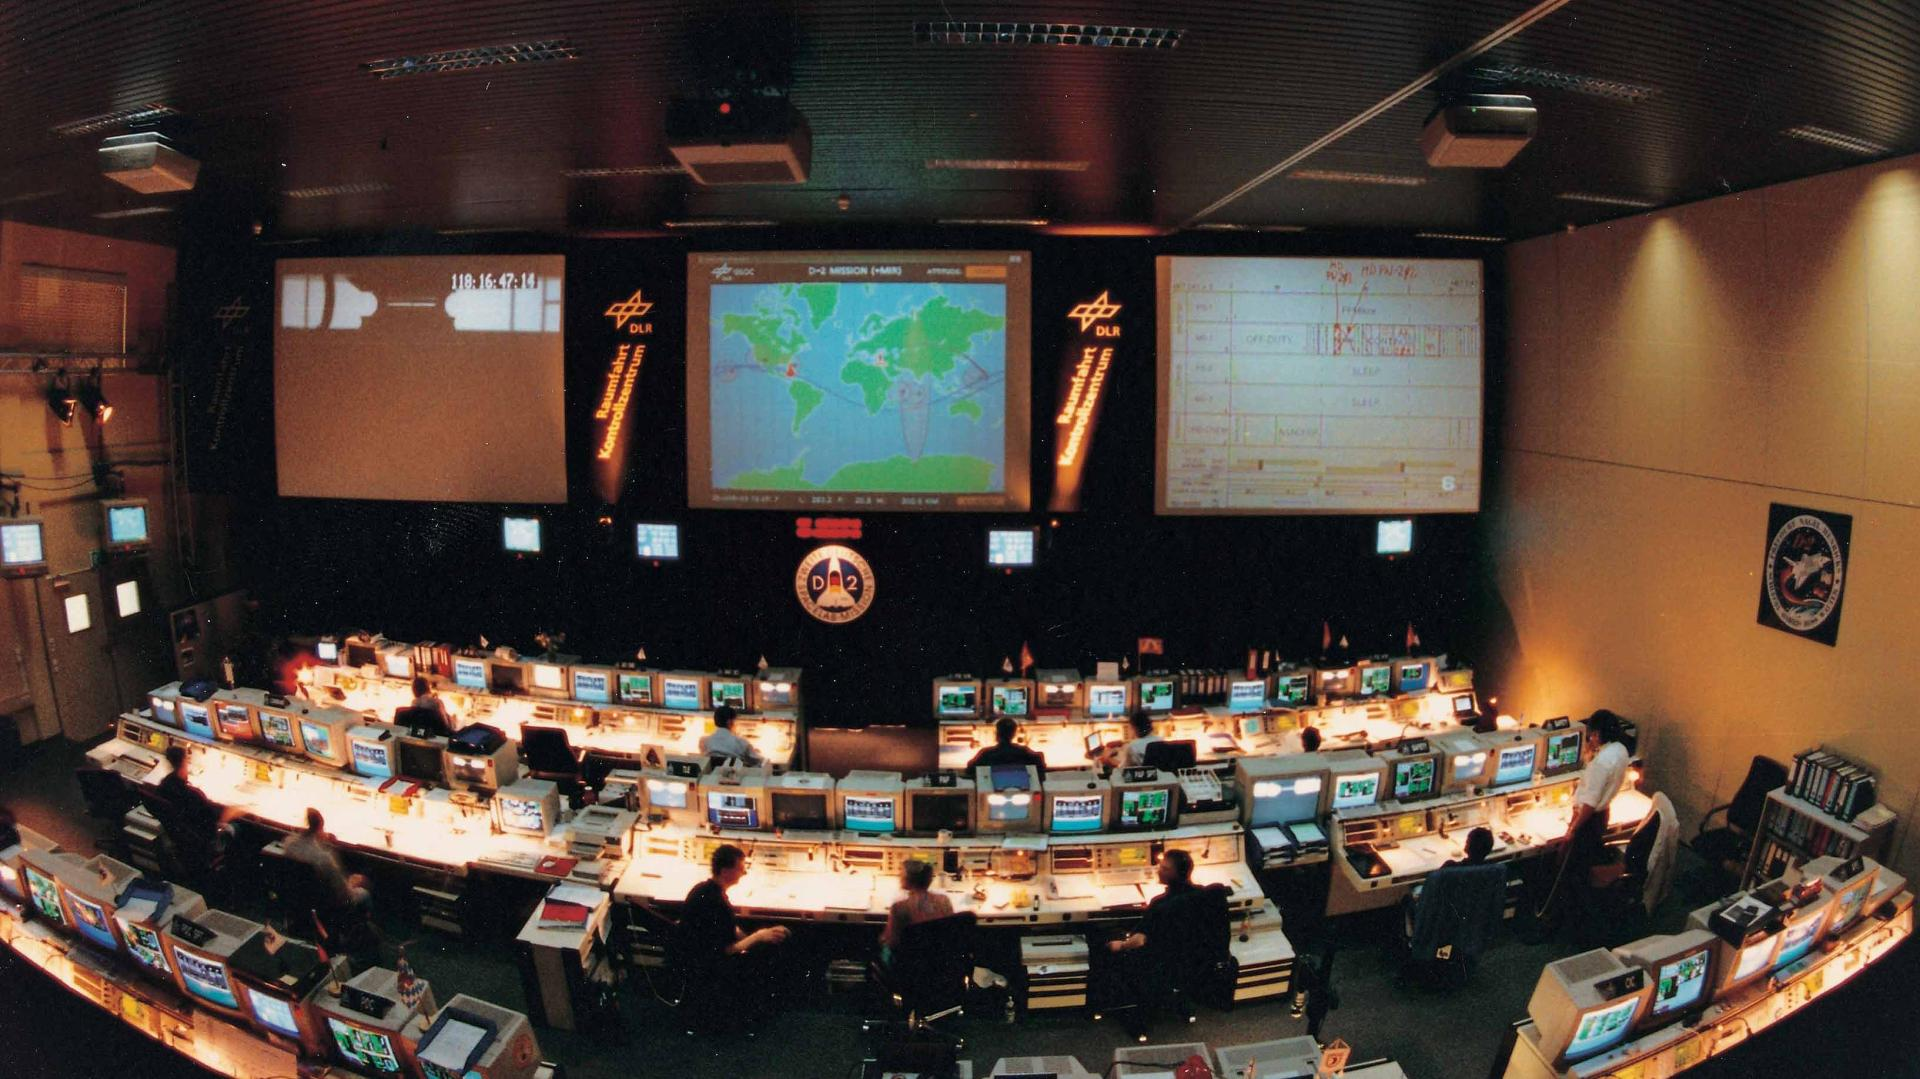 Activity in Mission Control during the D-2 Mission